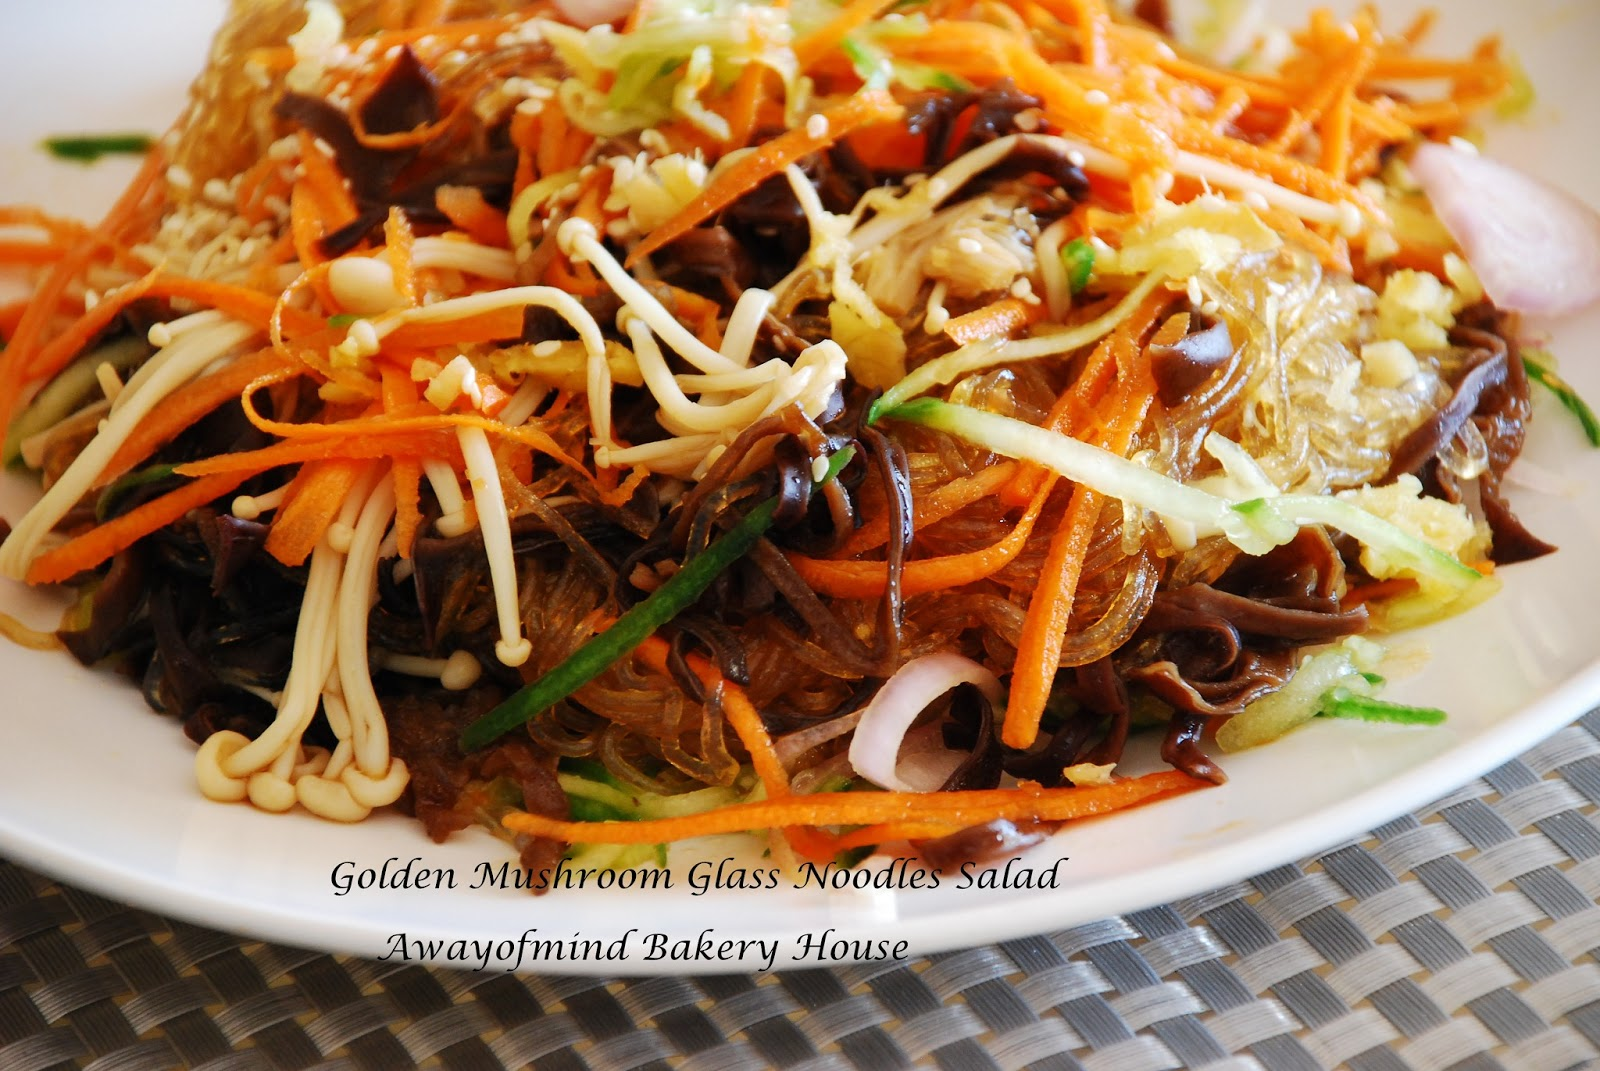 ... House: Golden Mushroom Glass Noodles Salad 凉拌冬粉金针菇